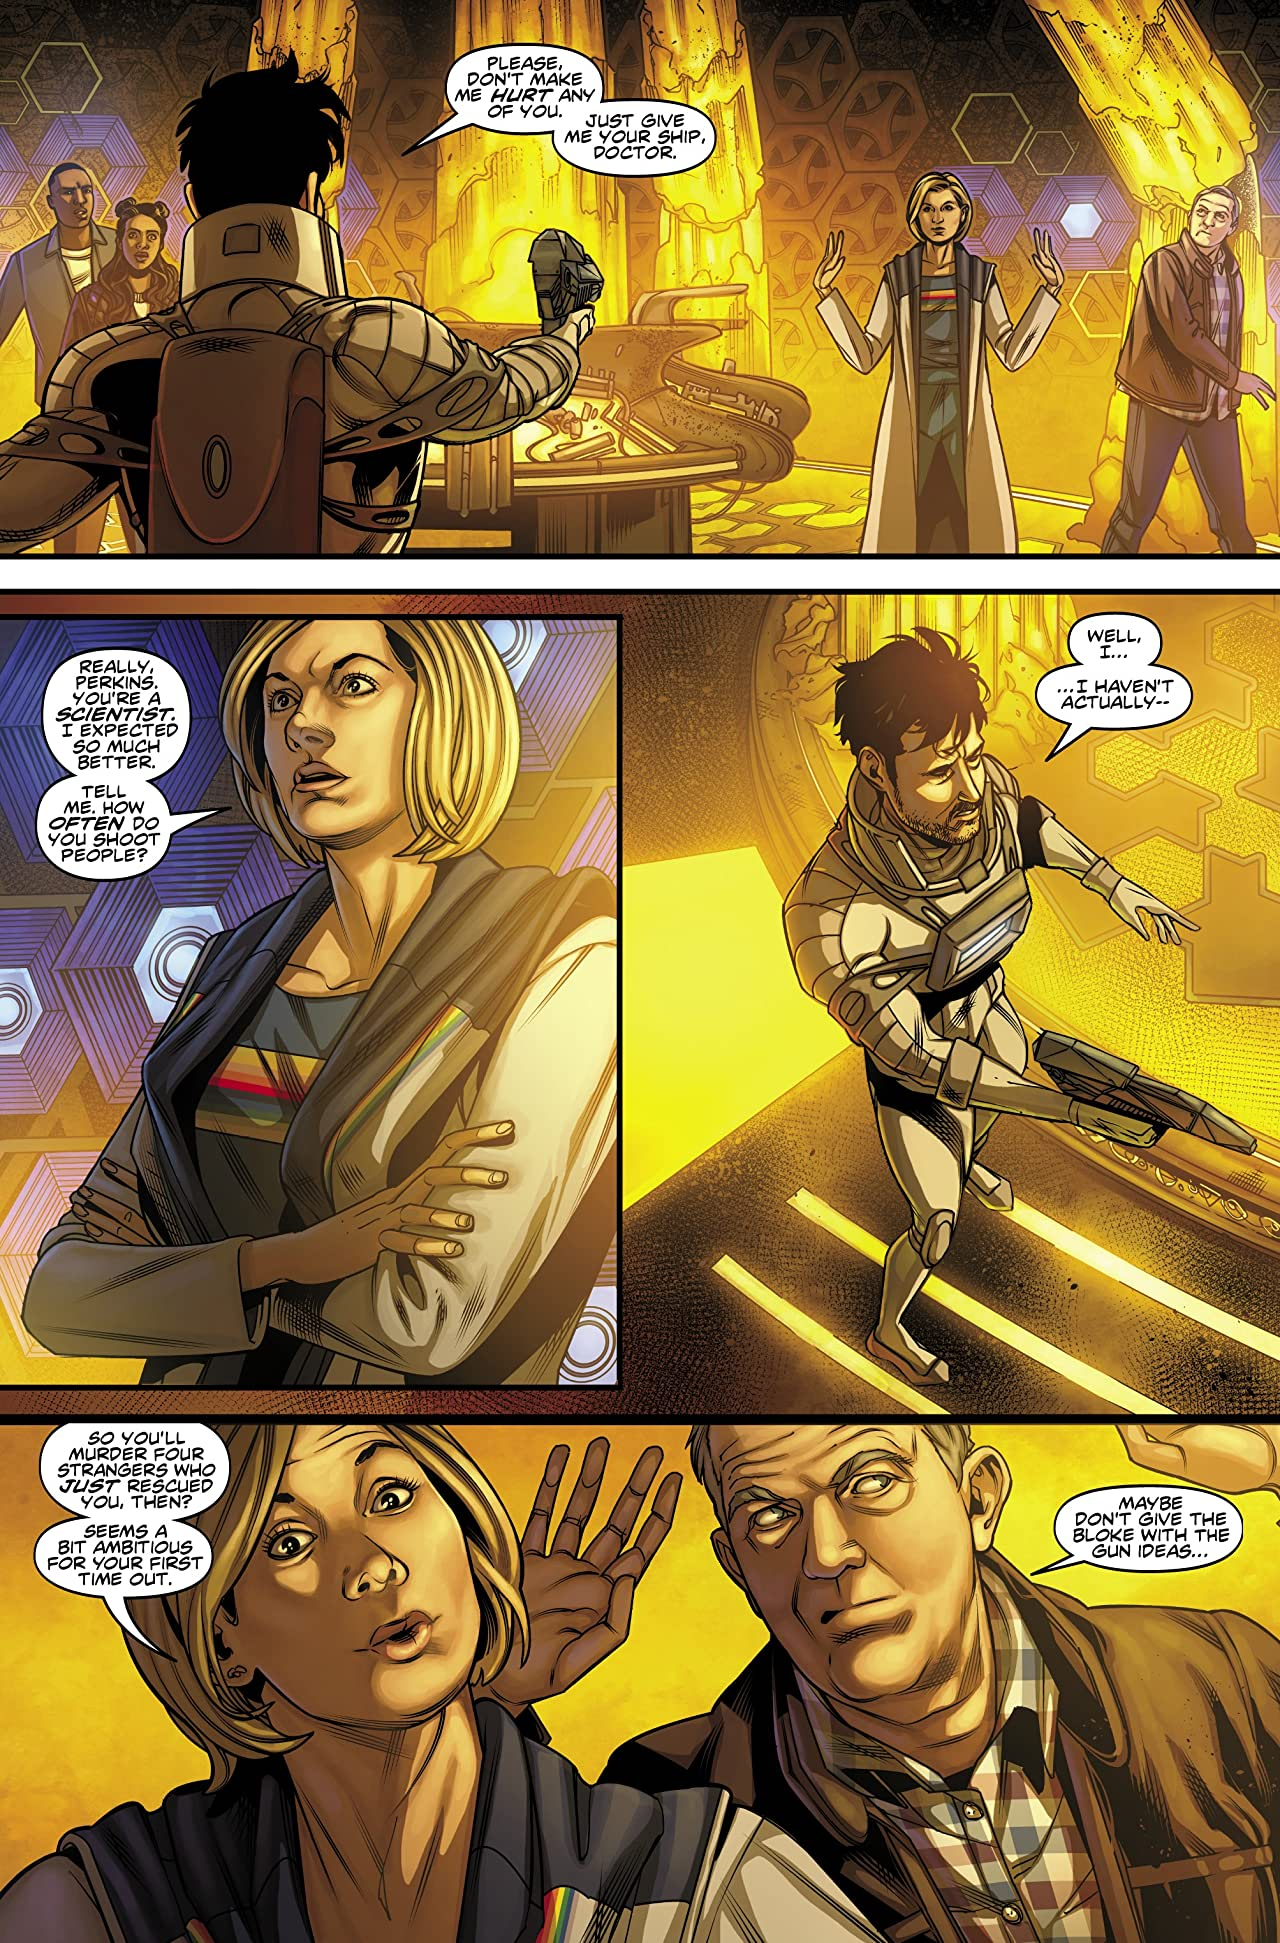 Doctor Who: The Thirteenth Doctor #3